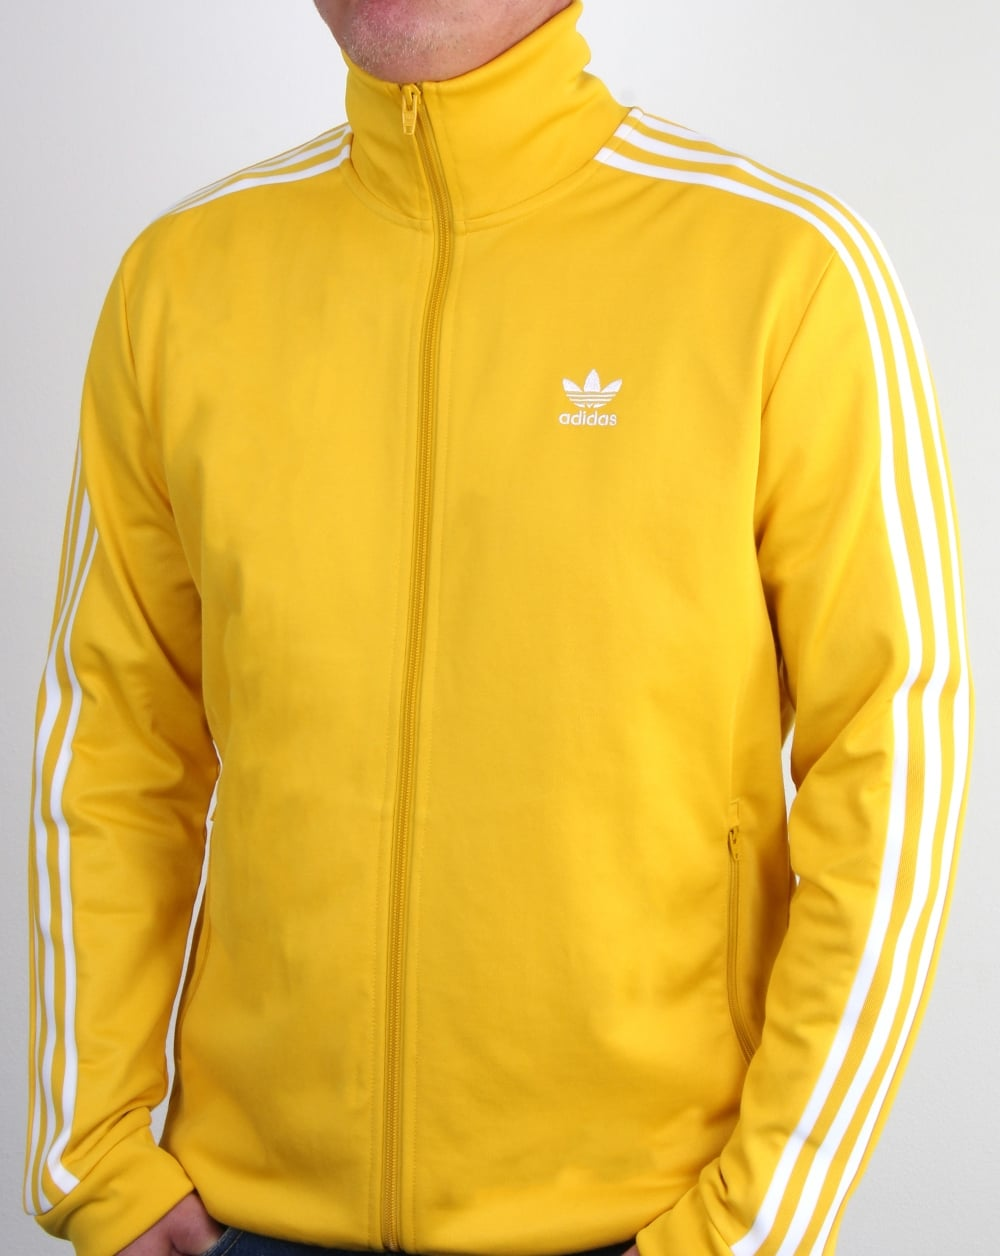 Buy Here Pay Here Ma >> Adidas Originals Beckenbauer Track Top Tribe Yellow, Mens, jacket, top